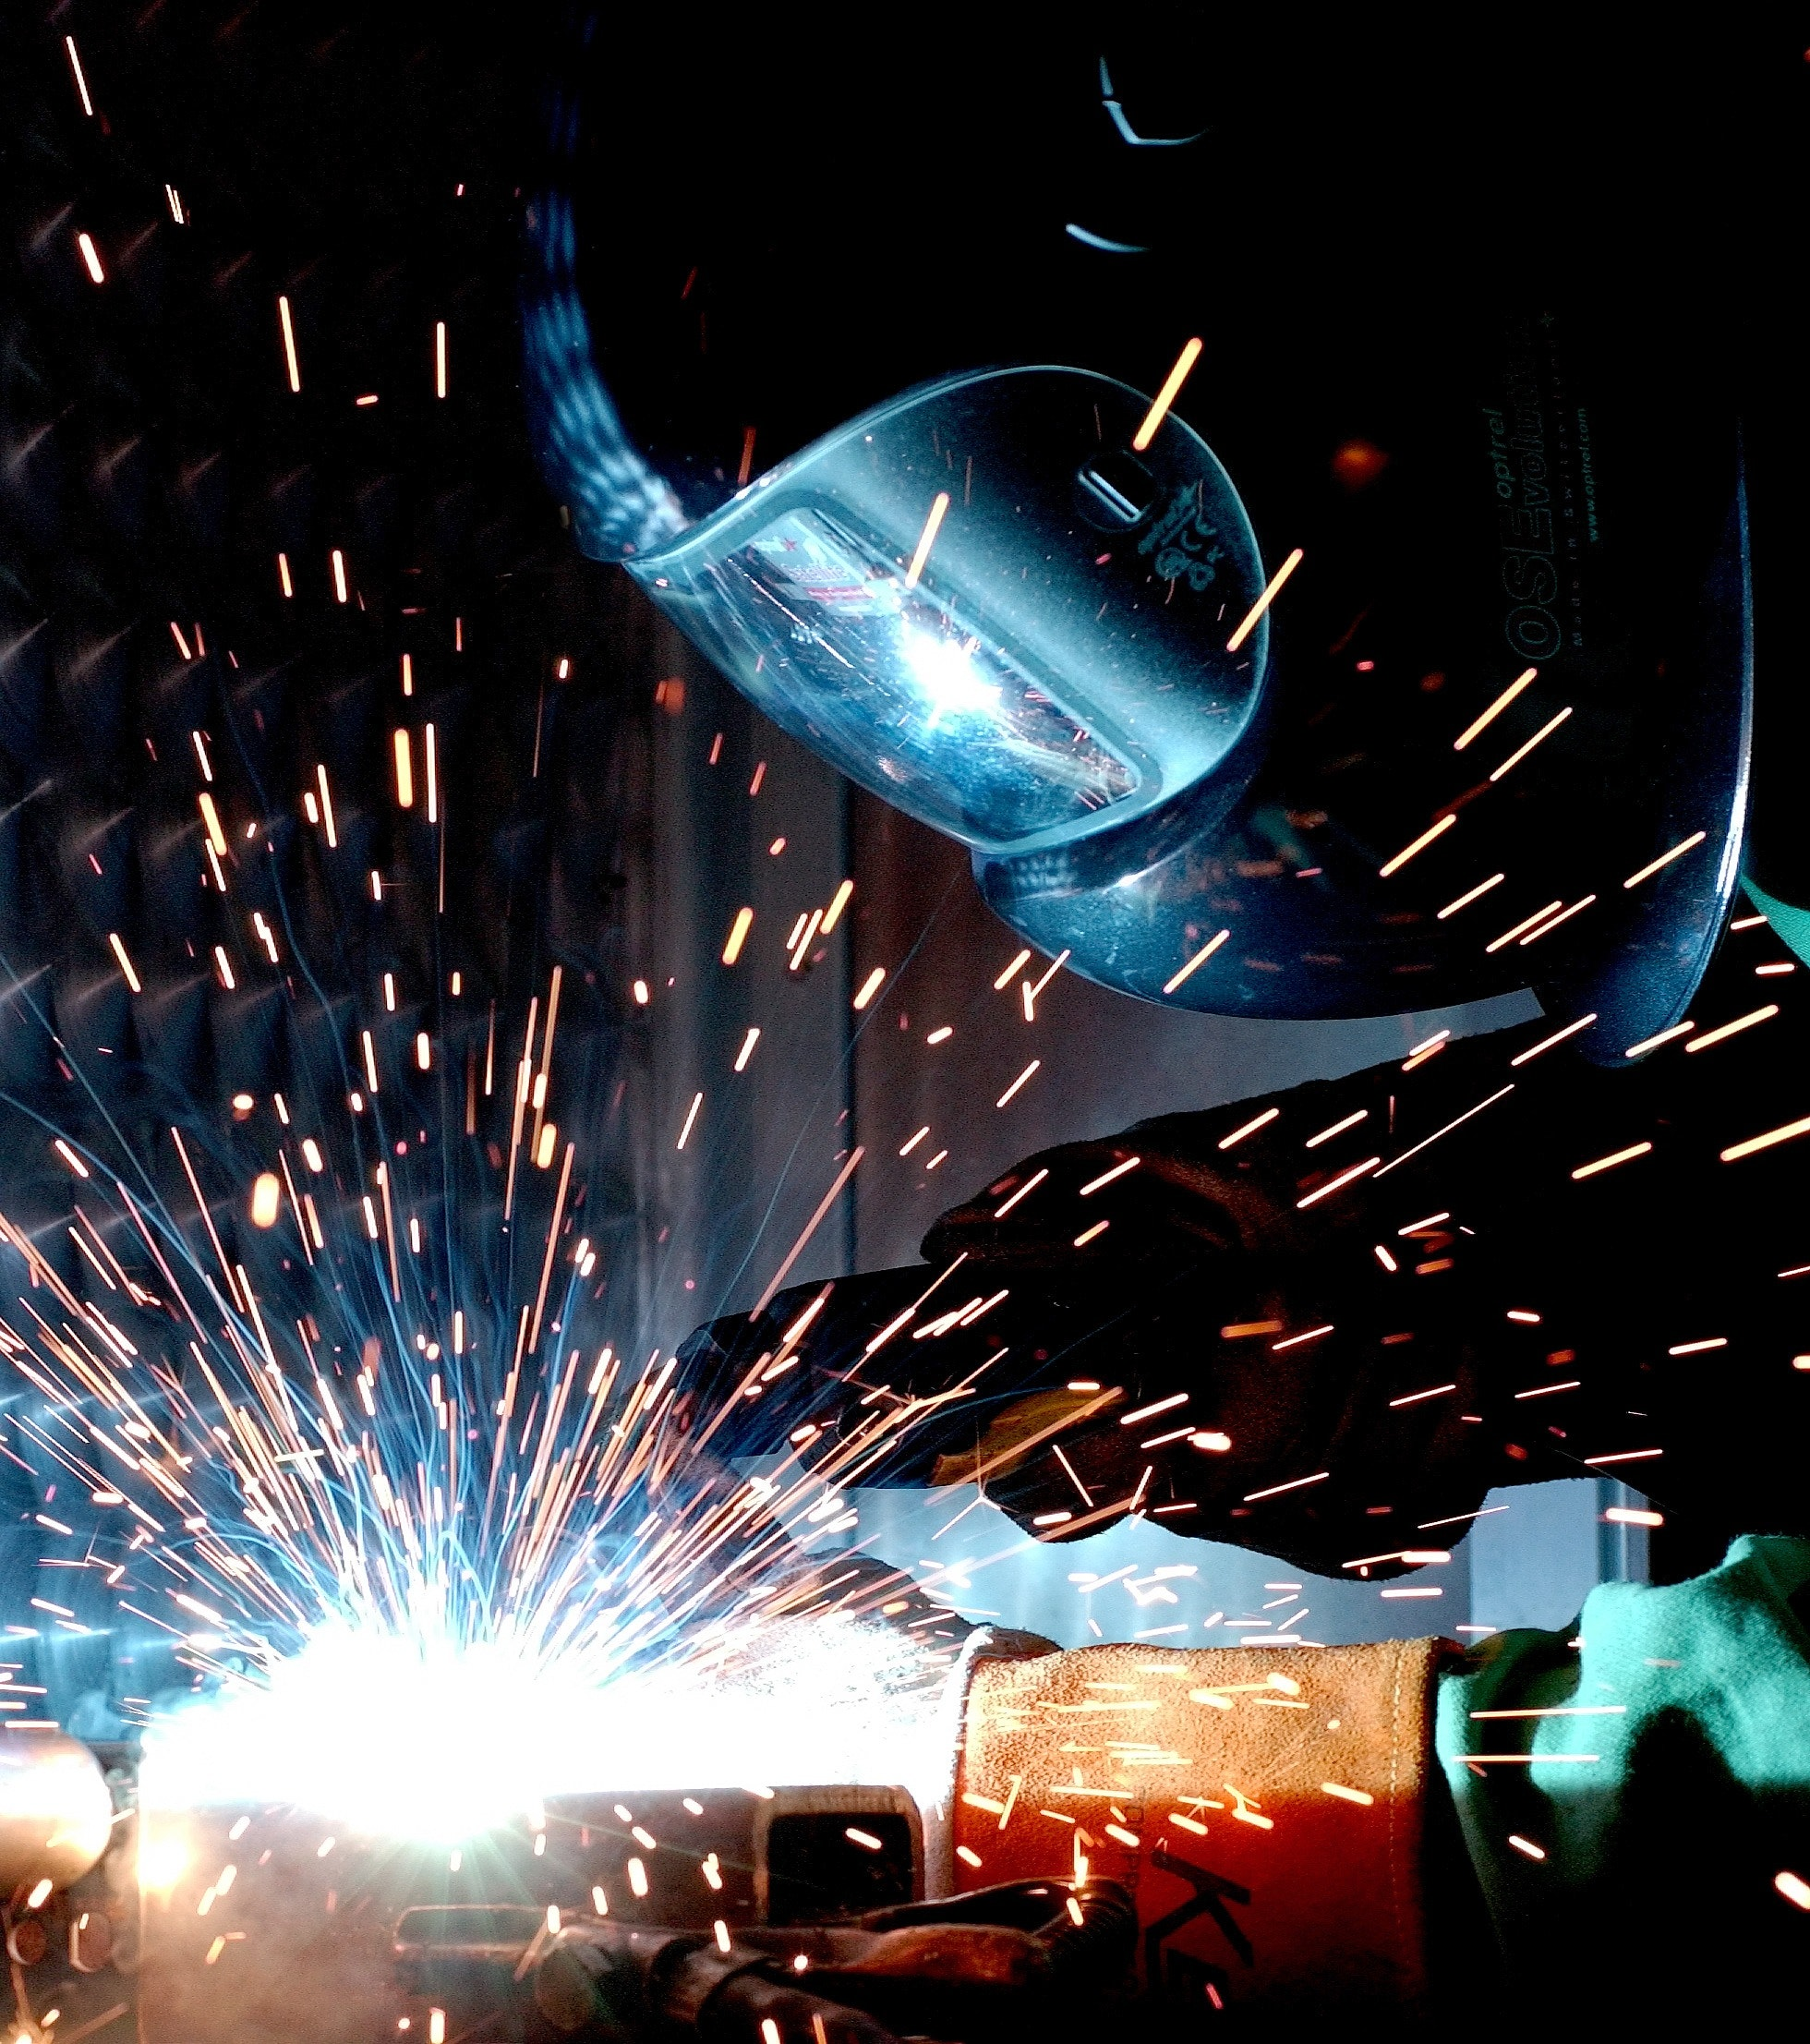 person in welding mask welding